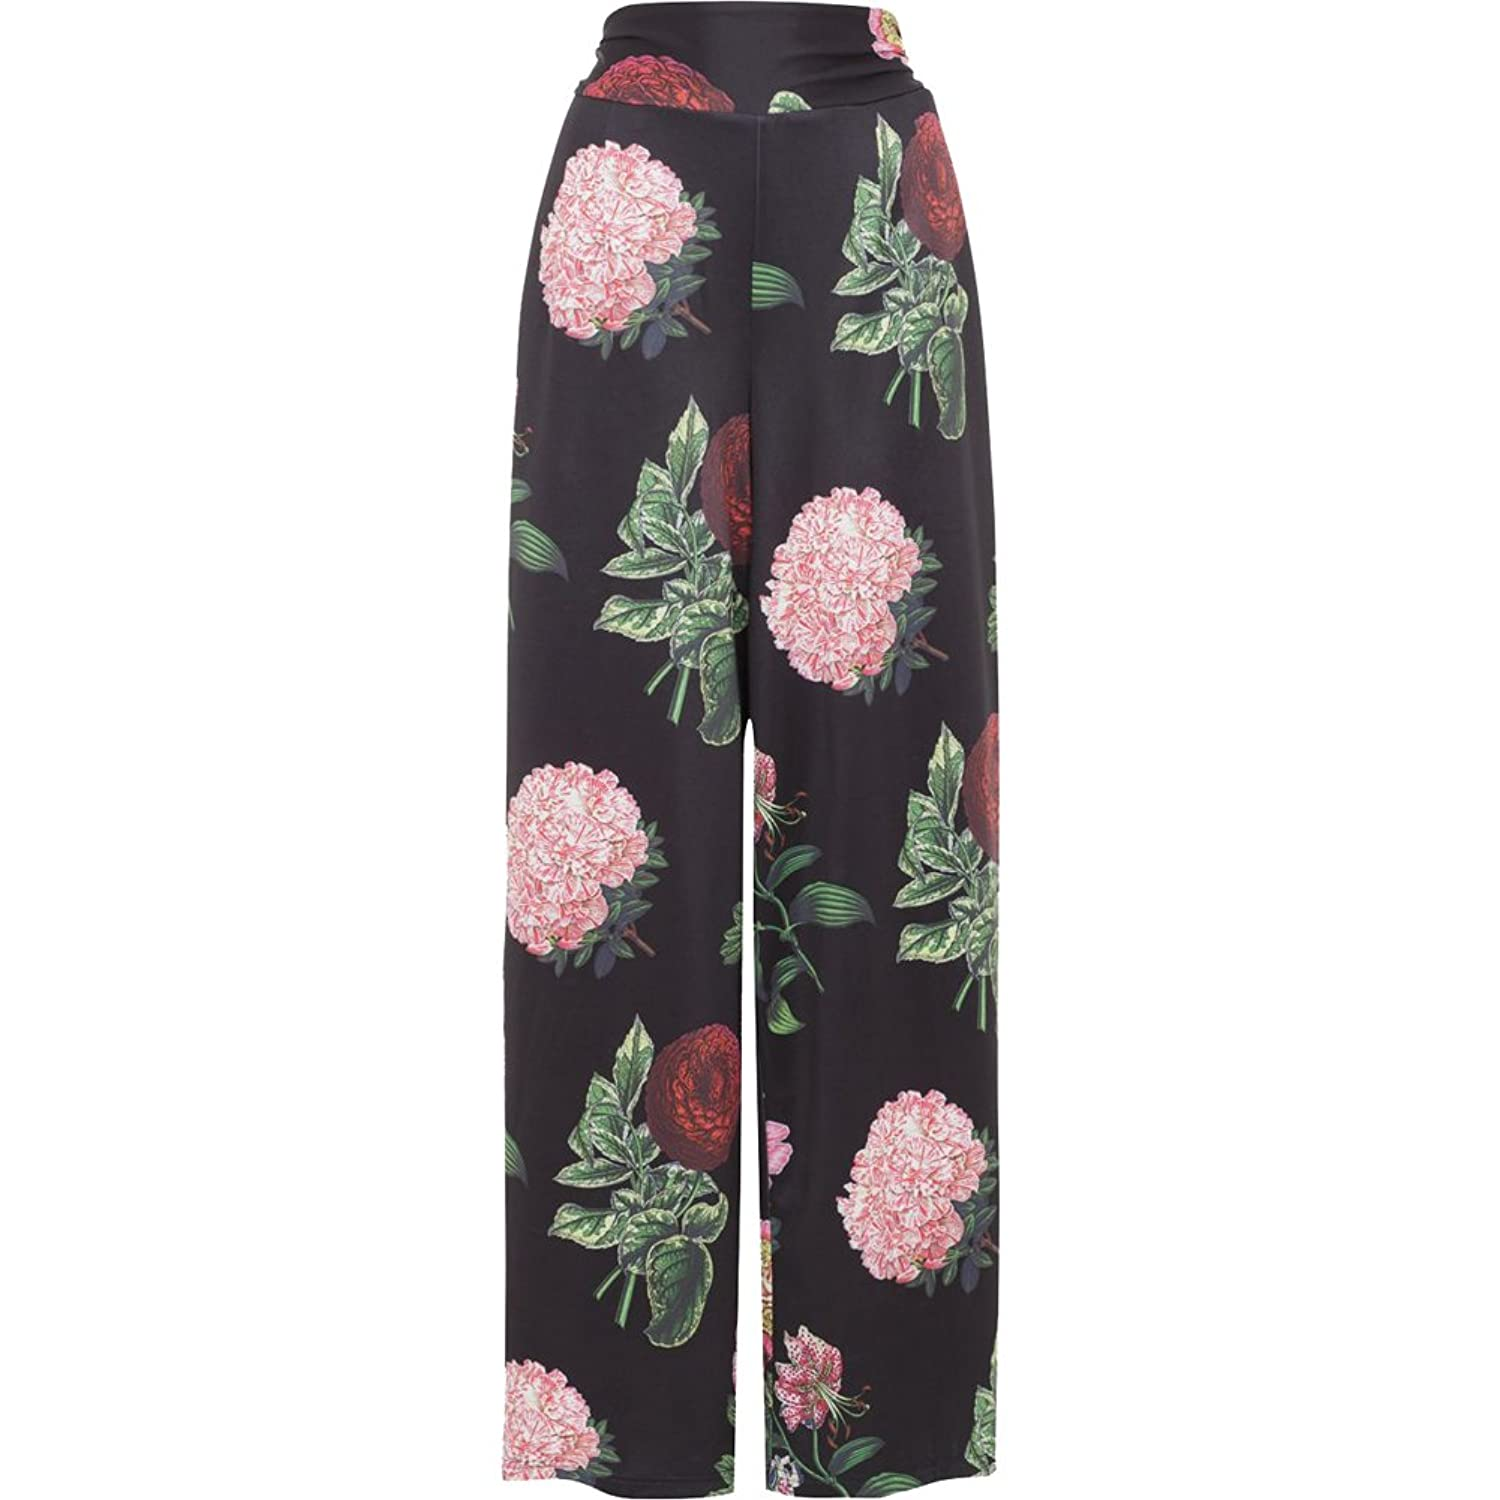 1920s Style Women's Pants, Trousers, Knickers  NATALIA Large Vintage Floral Print Pants Black $57.99 AT vintagedancer.com